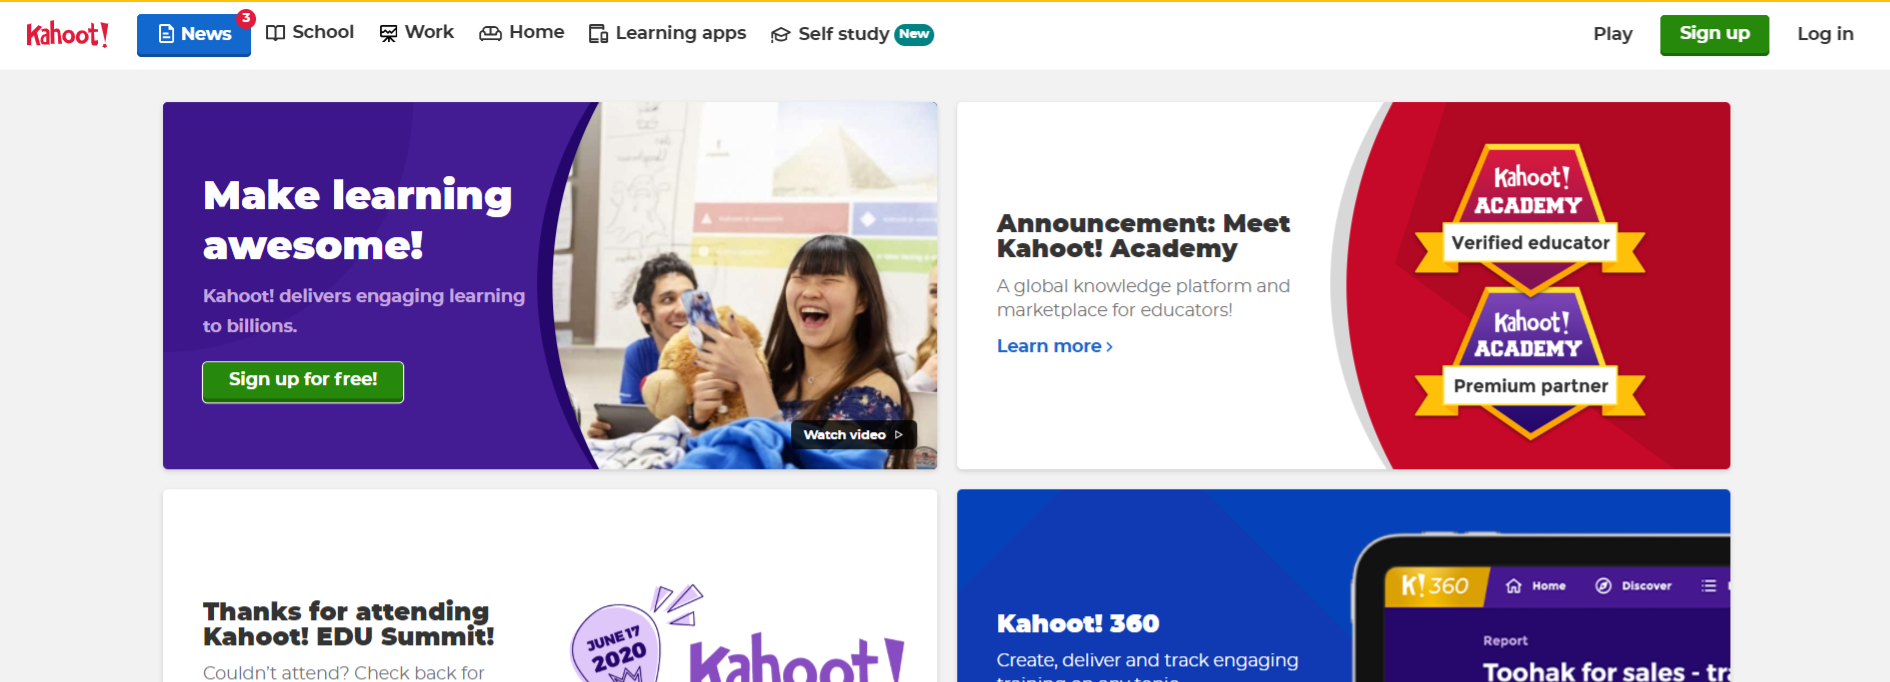 Kahoot: Student collaboration tool